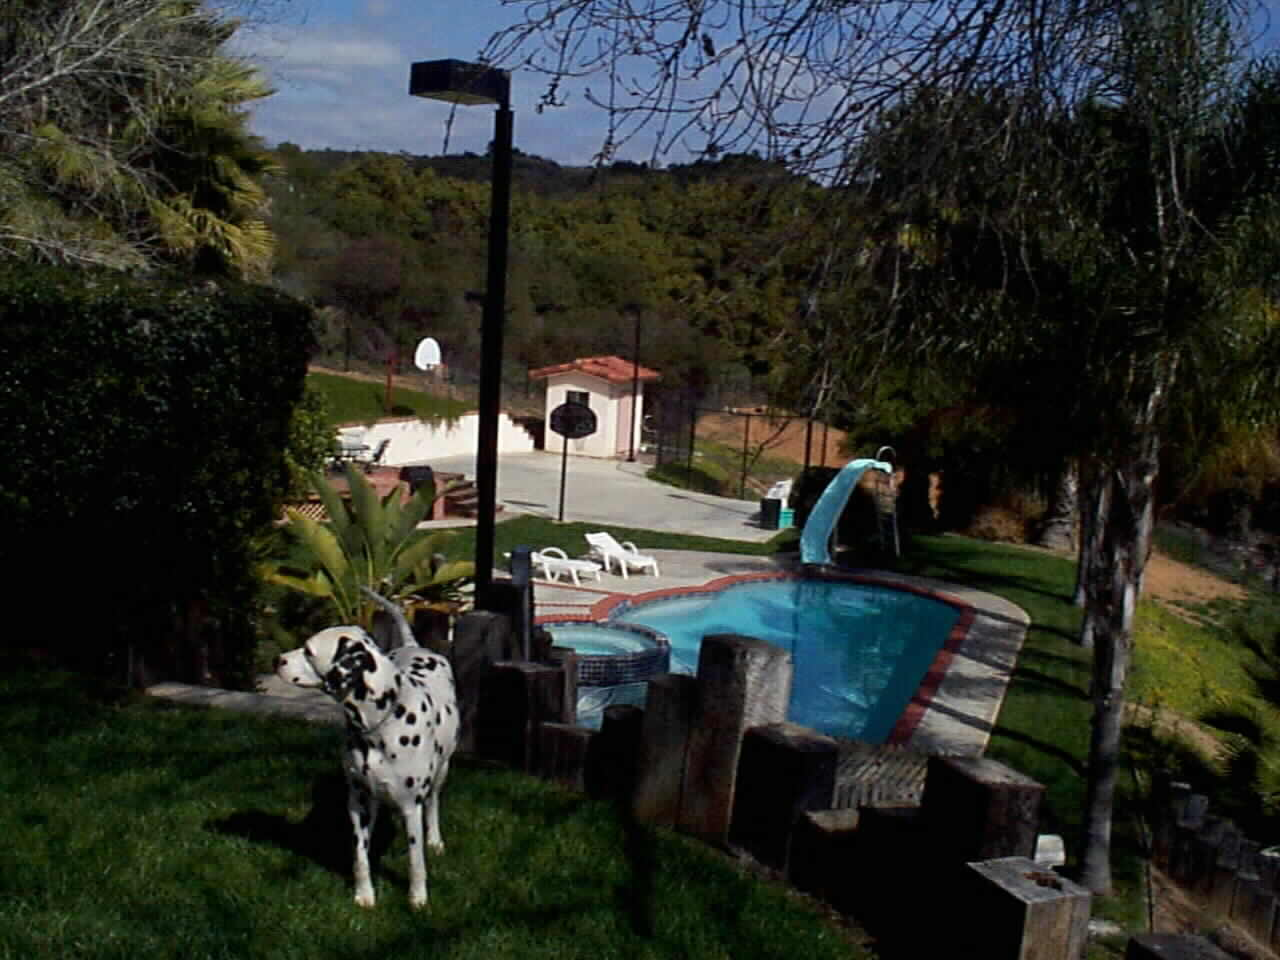 A dog's life in Bonsall